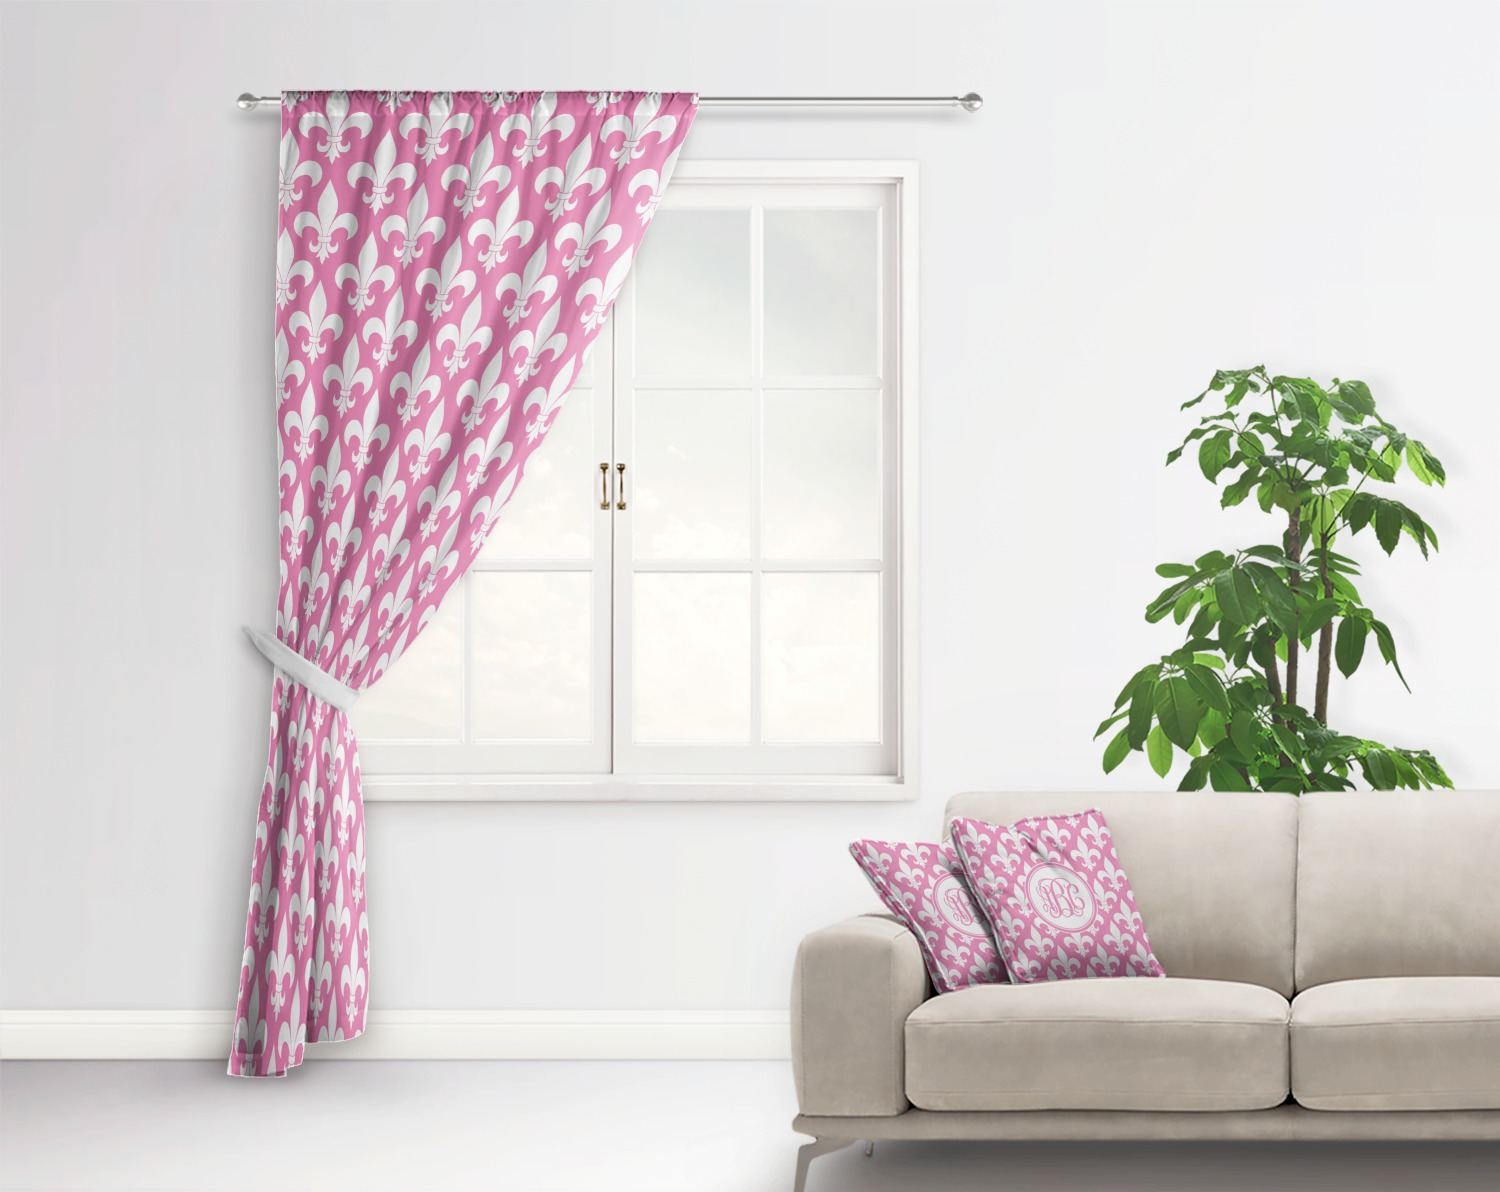 Fleur De Lis Curtain With Window And Rod In Room Matching Pillow